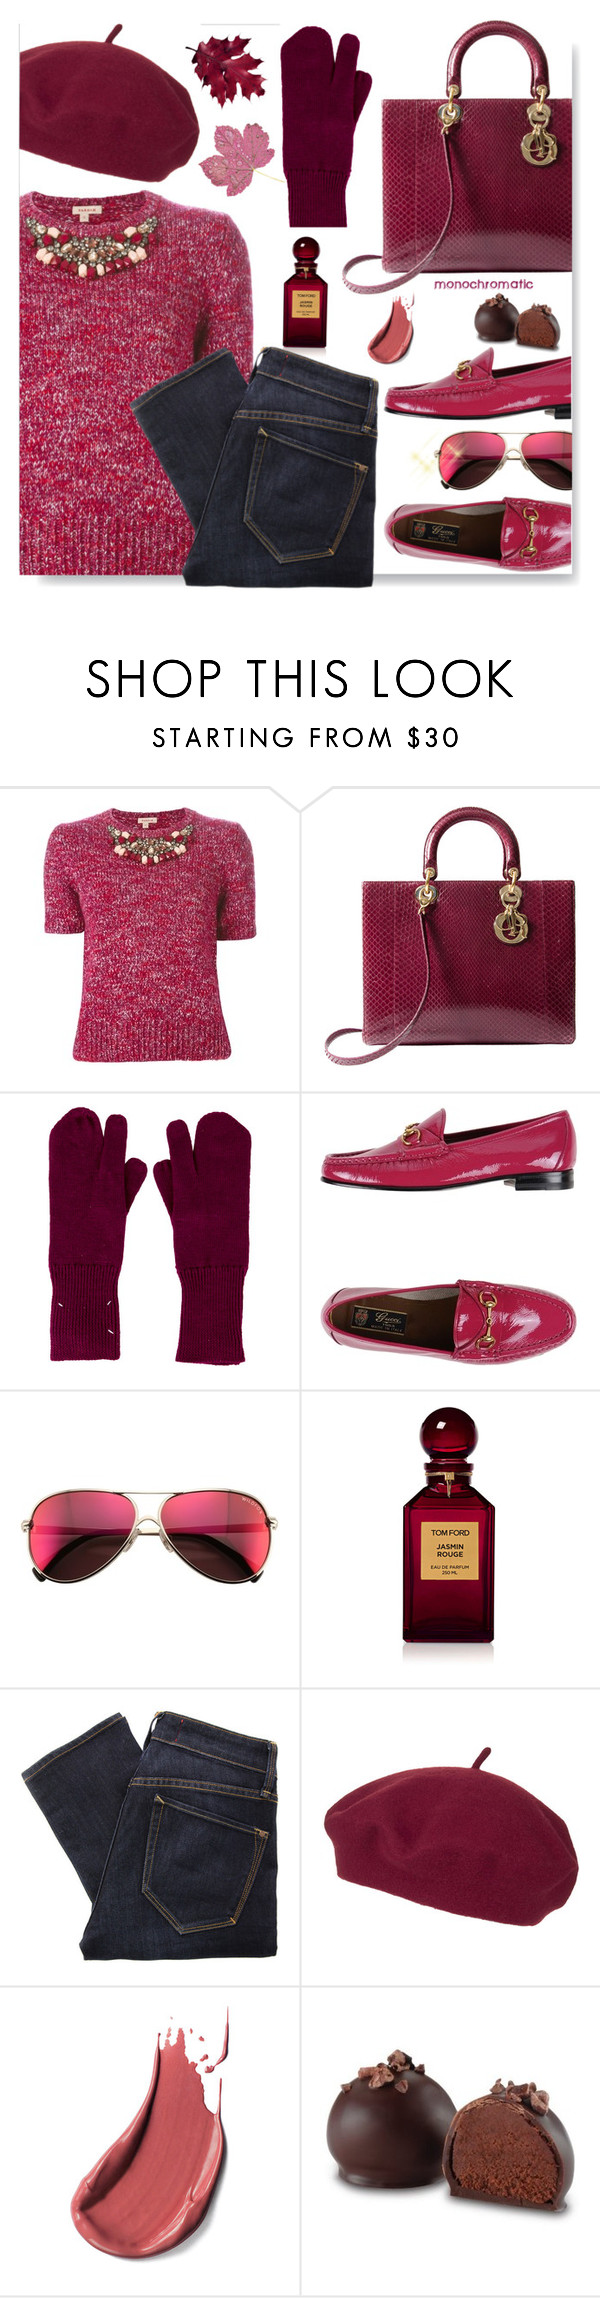 """""""raspberry beret"""" by drenise ❤ liked on Polyvore featuring P.A.R.O.S.H., Christian Dior, Maison Margiela, Gucci, Wildfox, Tom Ford, Marc by Marc Jacobs, Topshop, monochrome and beret"""